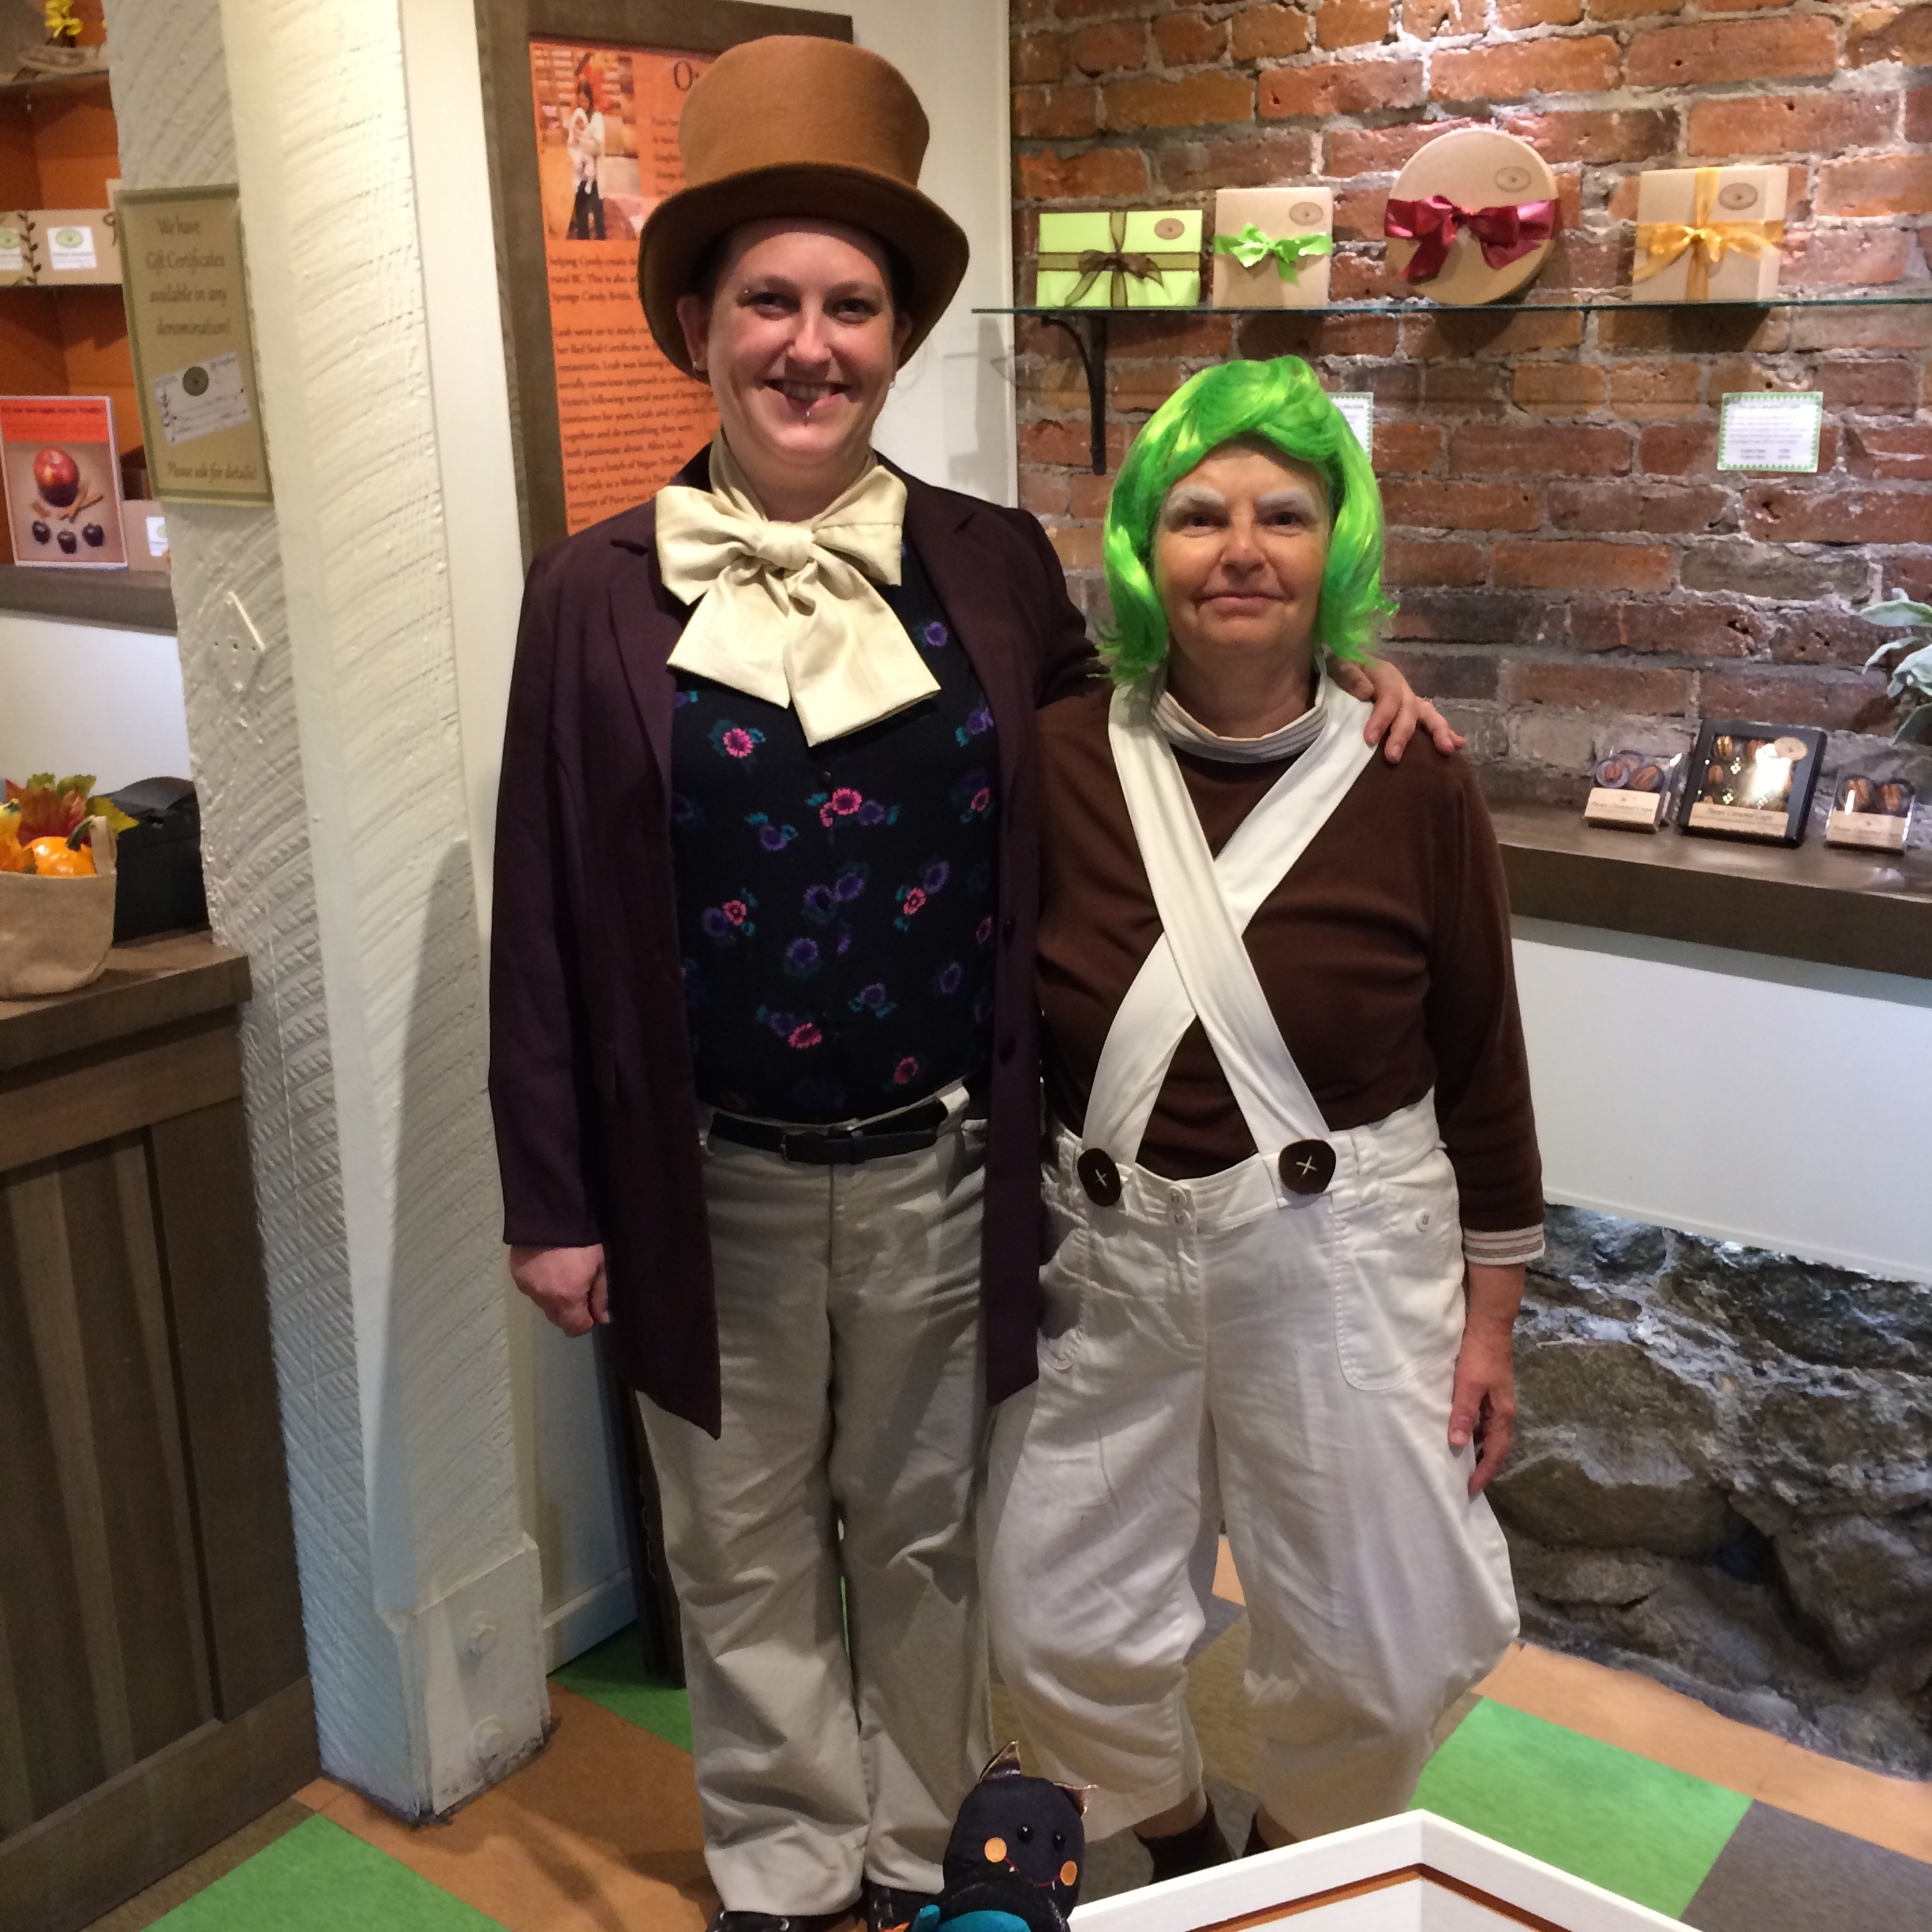 Leah & Cyndy dressed up for Hallowe'en as characters from Willy Wonka & The Chocolate Factory.